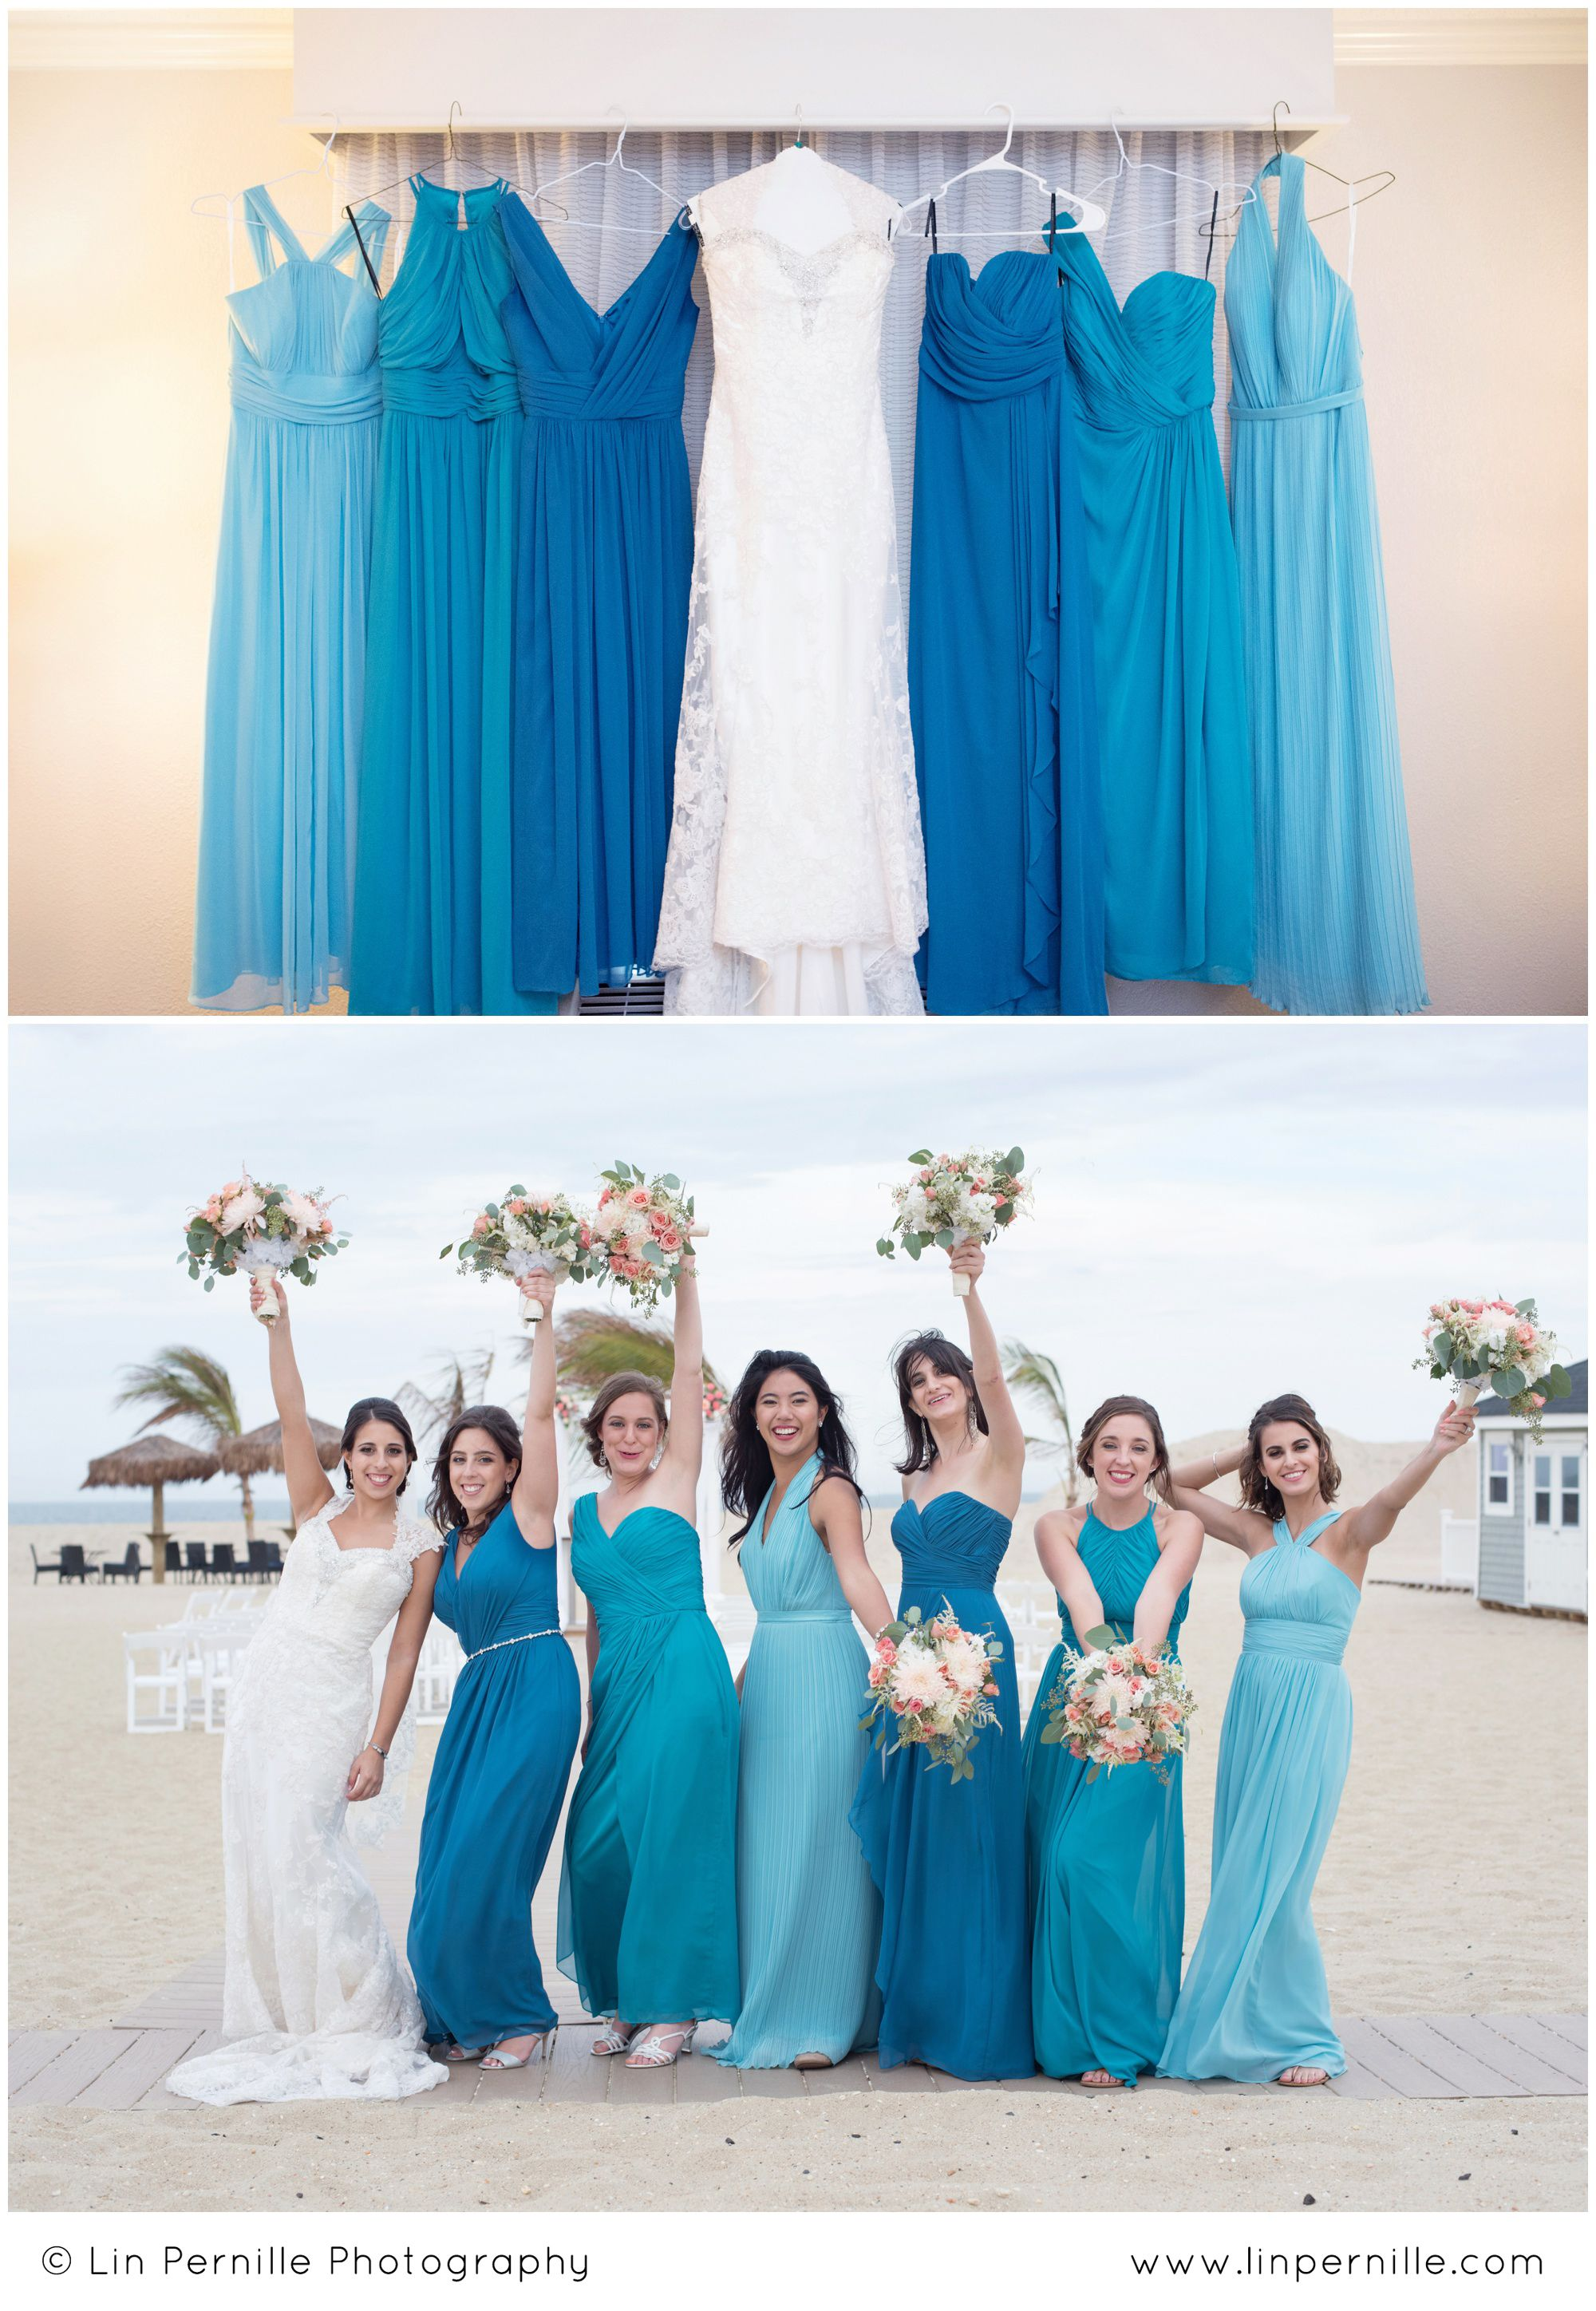 I LOVE mismatched bridesmaid dresses! These monochromatic shades ...